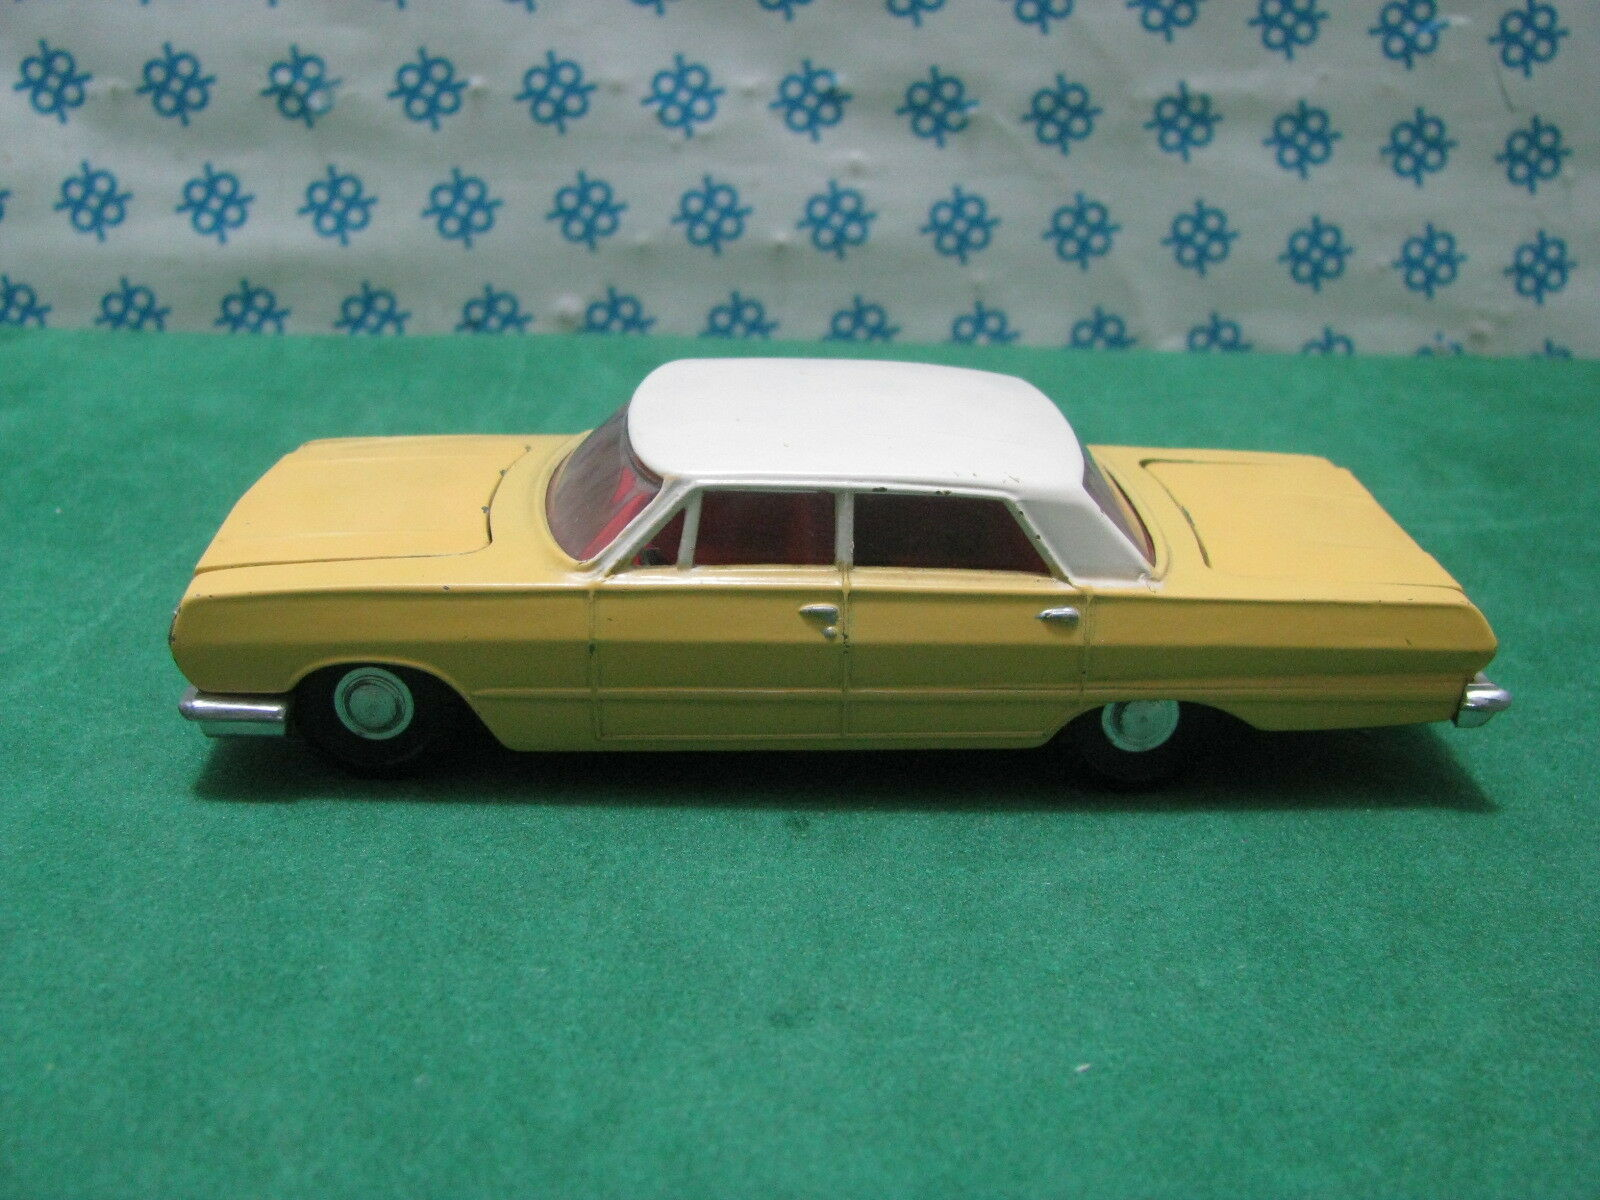 Seltene Jahr Hong Kong Dinky Spielzeugs 57 003 - Chevrolet Impala - Vnm